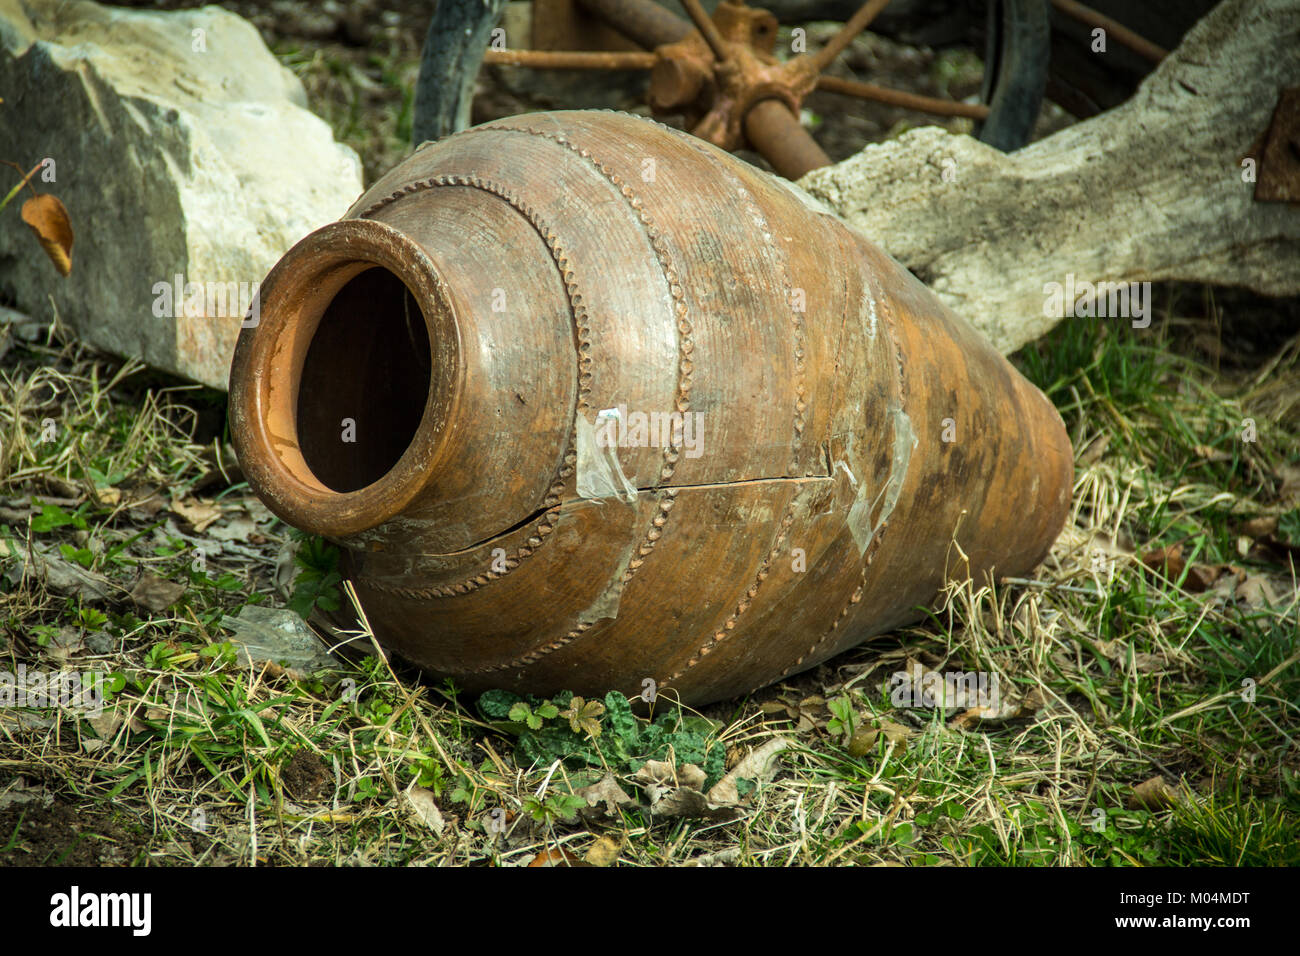 Old antique faience churn pot to make a butter from milk. - Stock Image